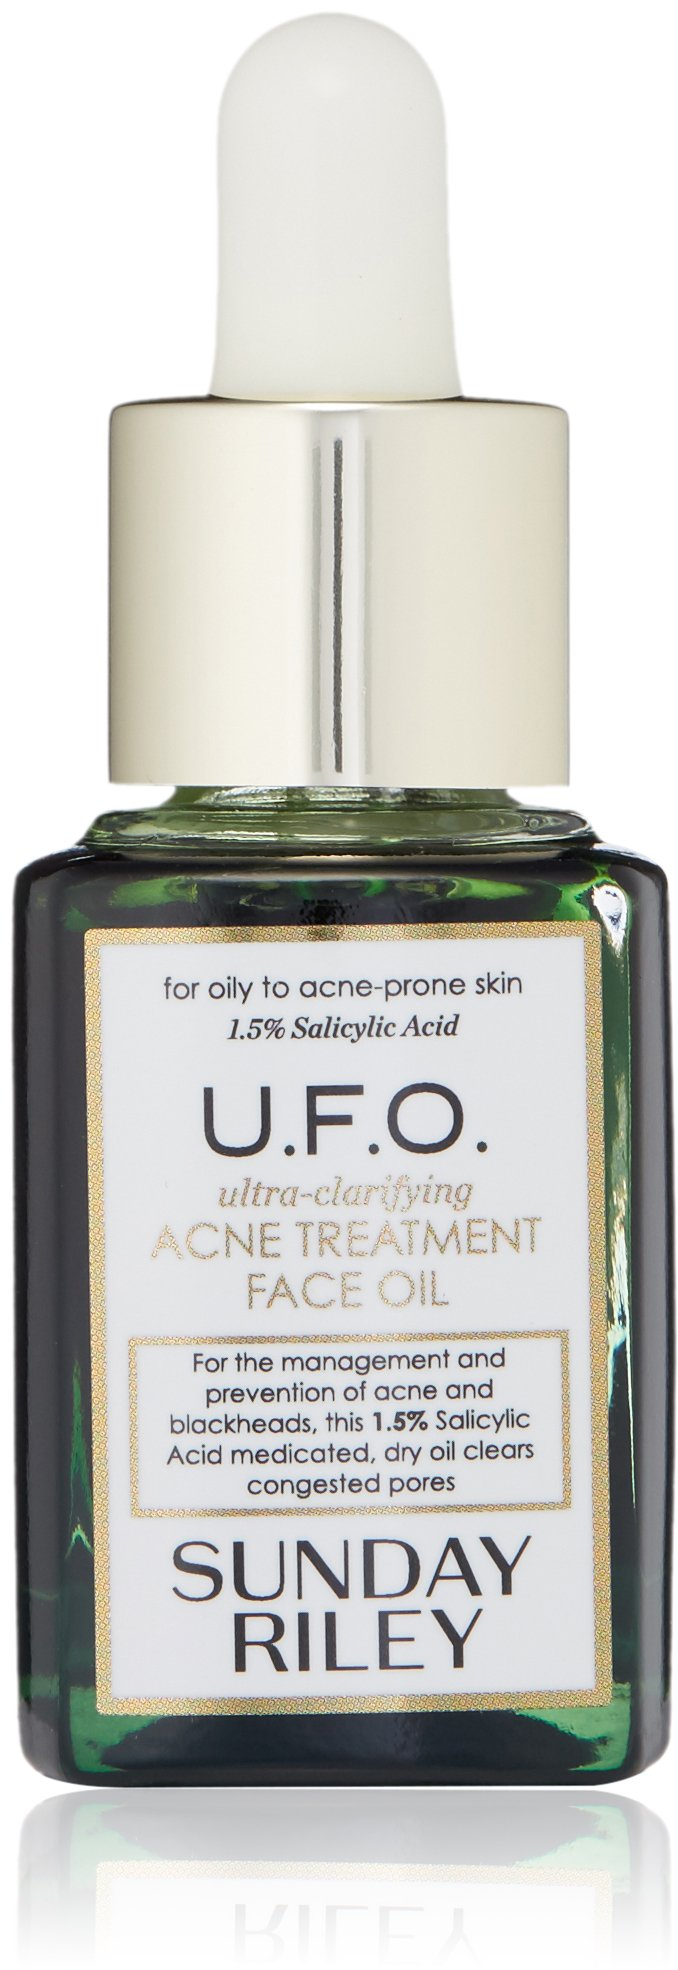 Sunday Riley U.F.O. Ultra-Clarifying Face Oil, 0.5 Fl Oz